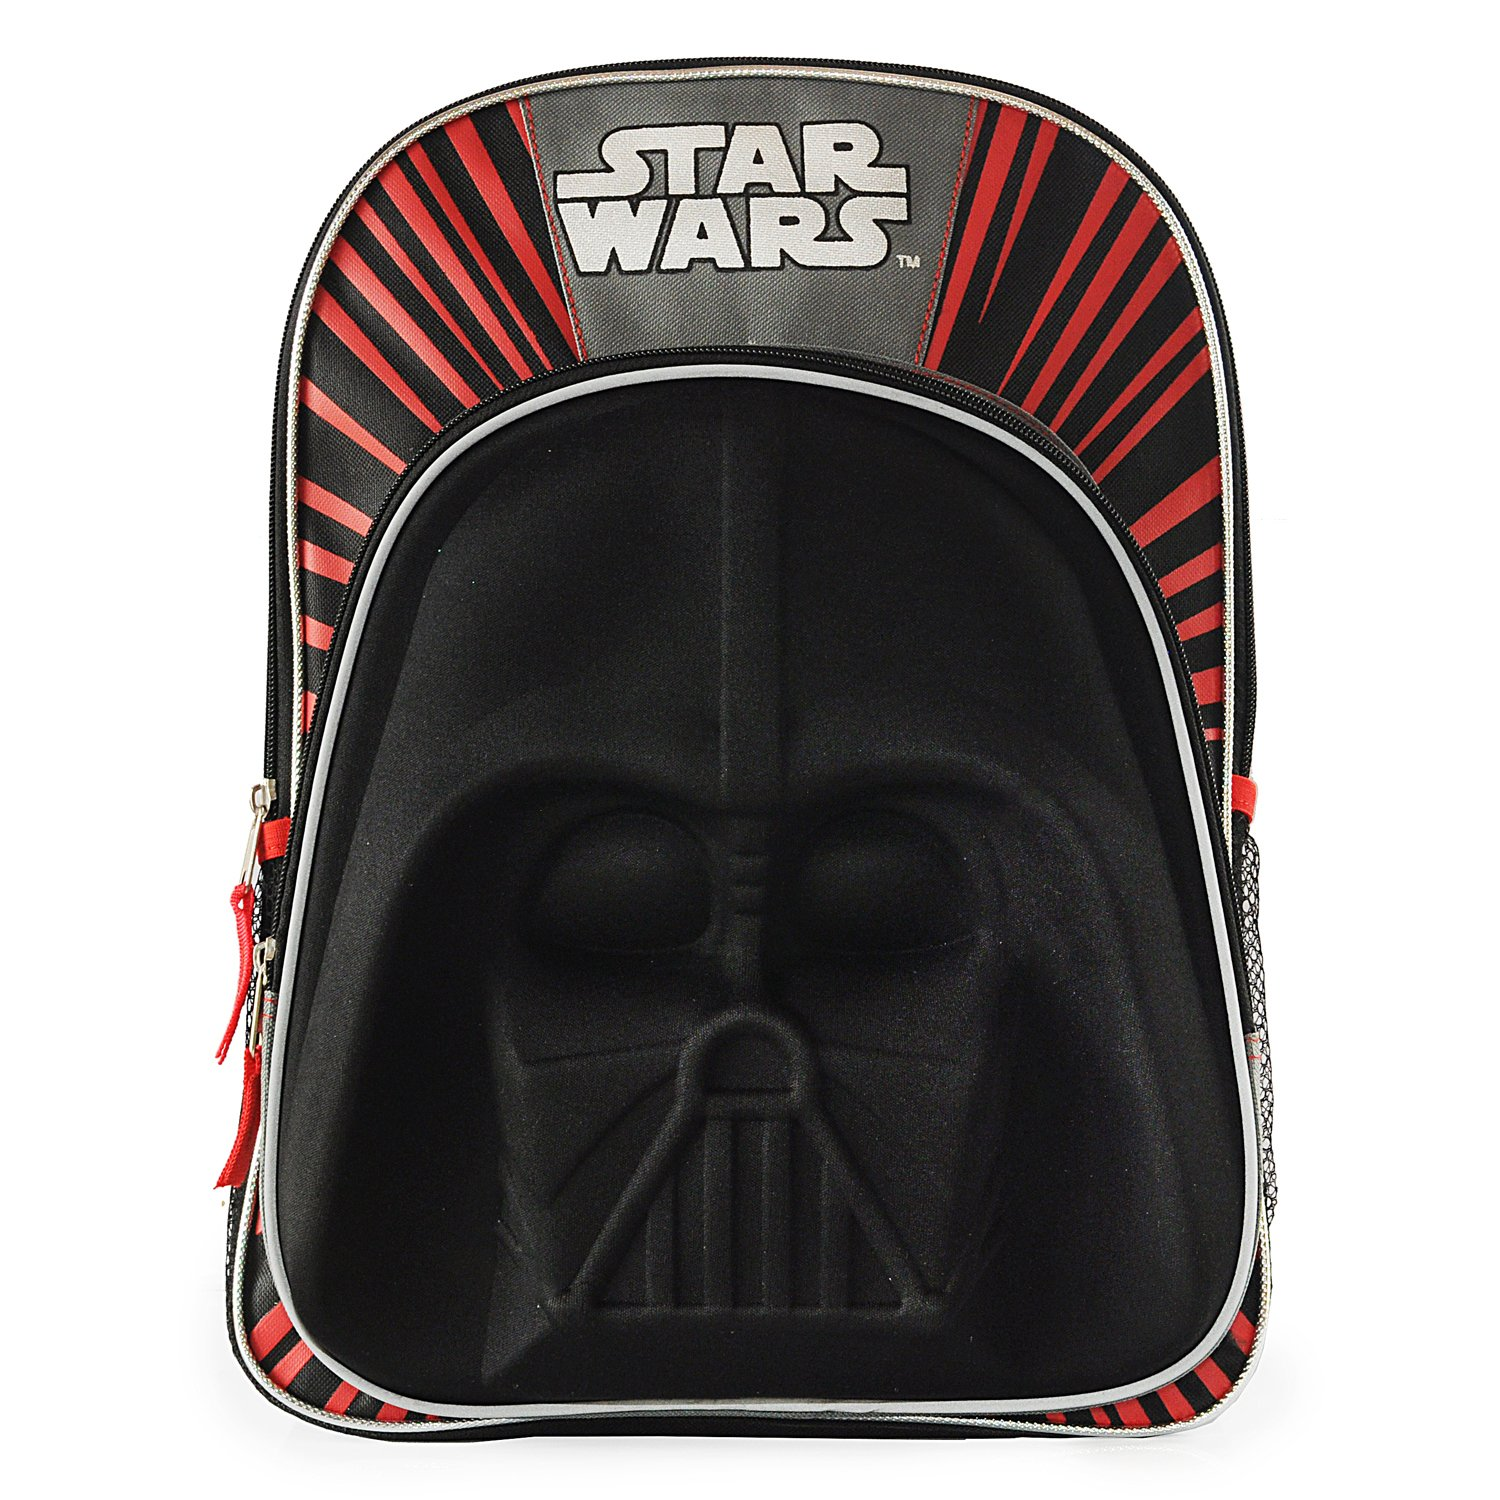 9e75883bcc Star Wars Darth Vader 3D Molded Backpack: Amazon.co.uk: Clothing